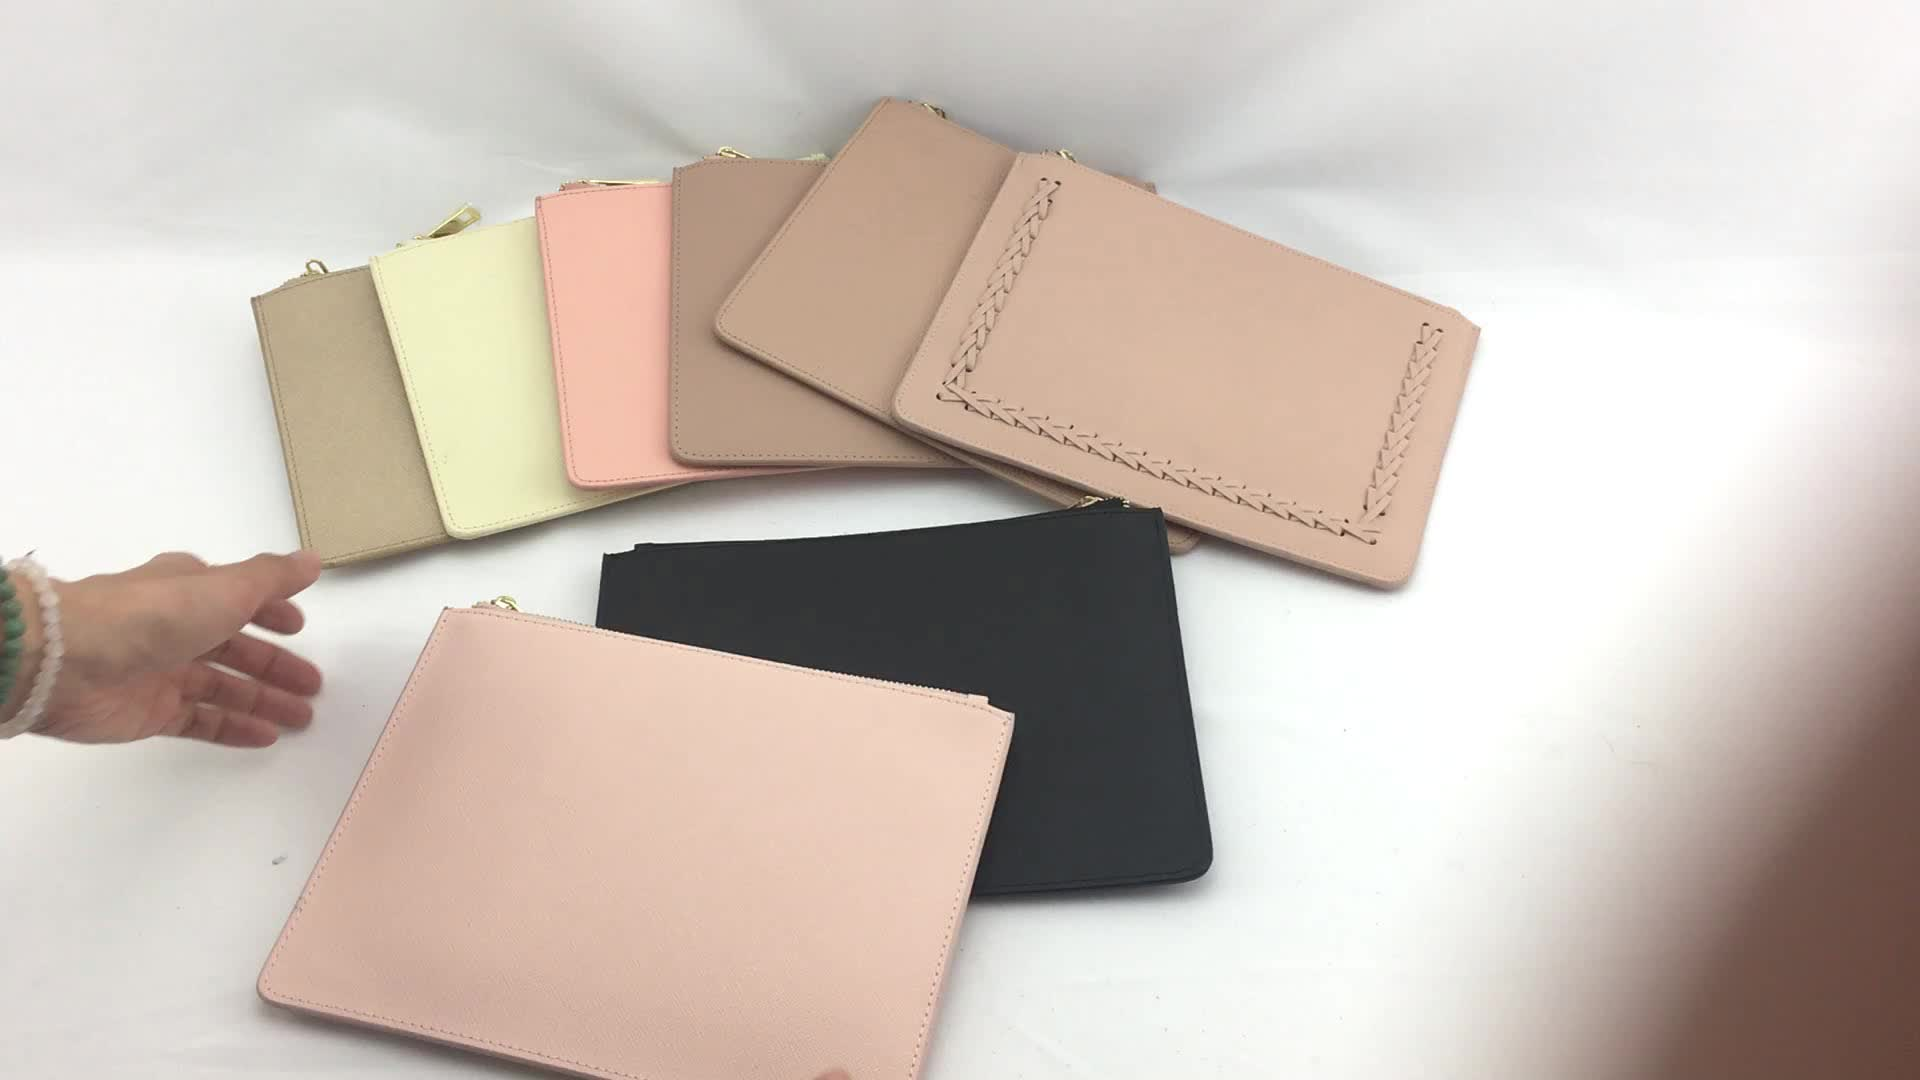 Hot Sale Genuine Saffiano Leather Pouch Zipper Bag Clutch With Gold Women Bags Zip For Business Woman